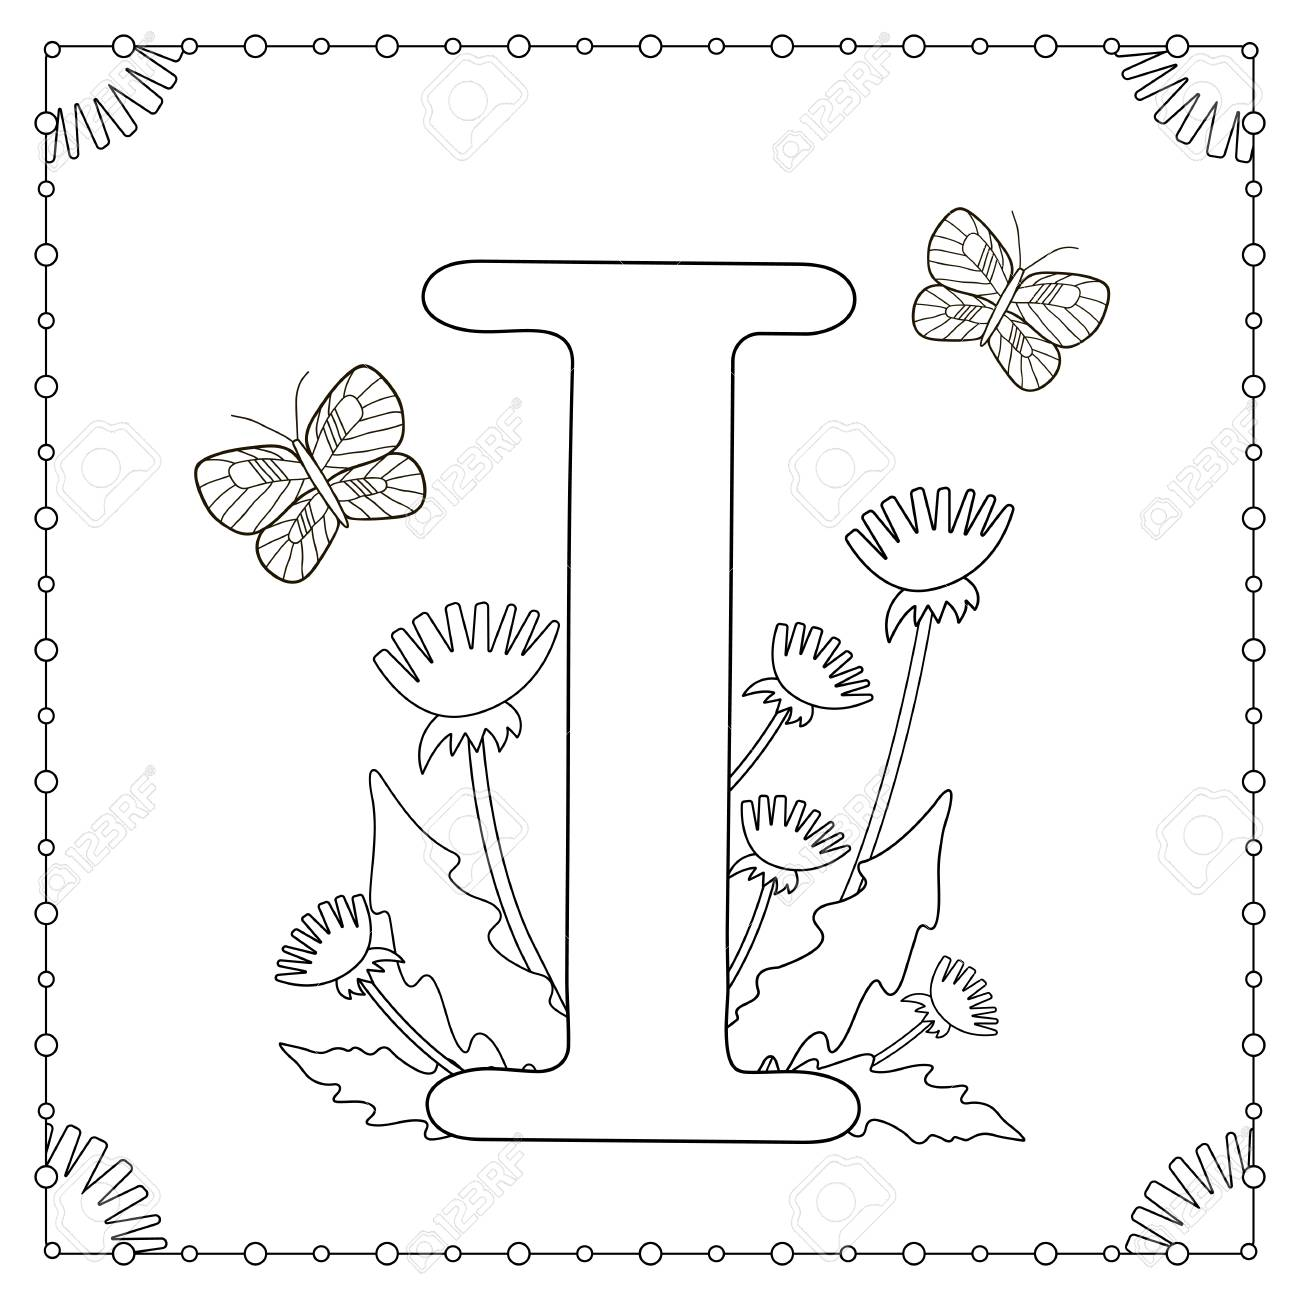 alphabet coloring page capital letter i with flowers leaves and butterflies vector illustration